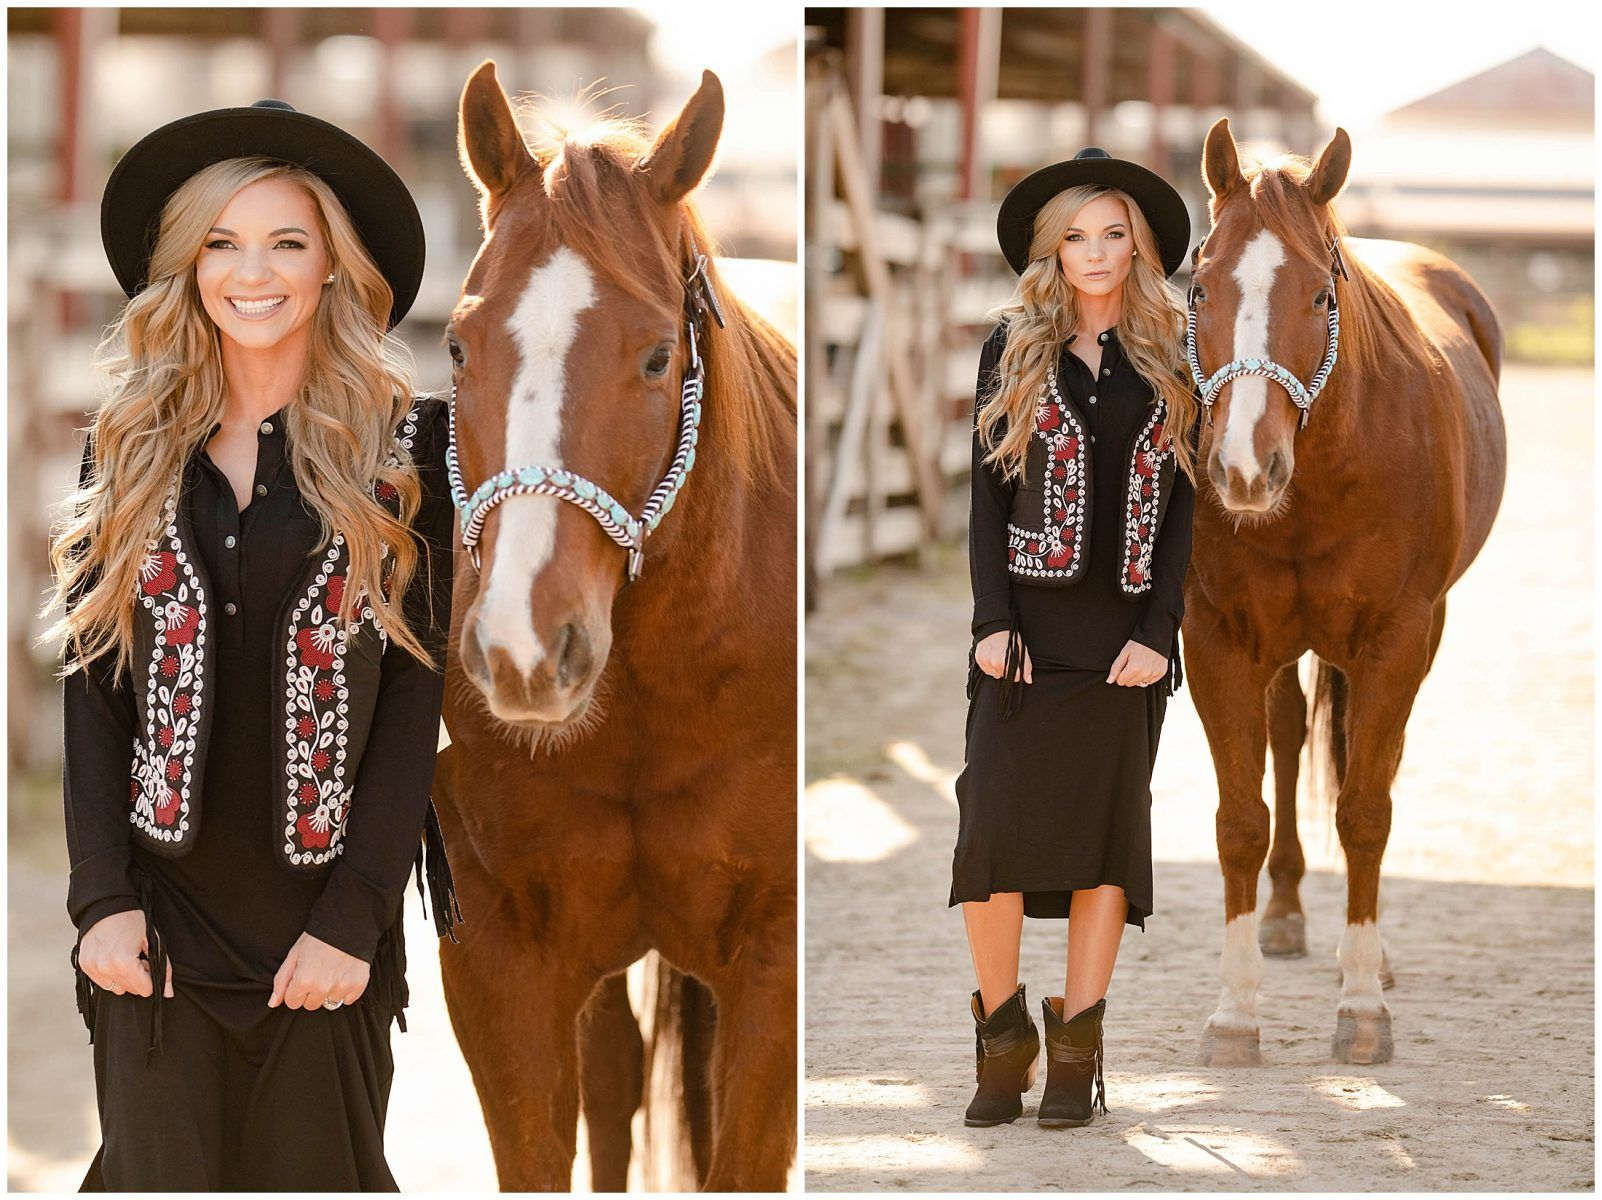 Tiffany Cooper Owner Of Fashion Posse Western Runway Magazine Is The Industry Expert In Western Fashion Promoting West Fashion Classic Trend Rodeo Fashion